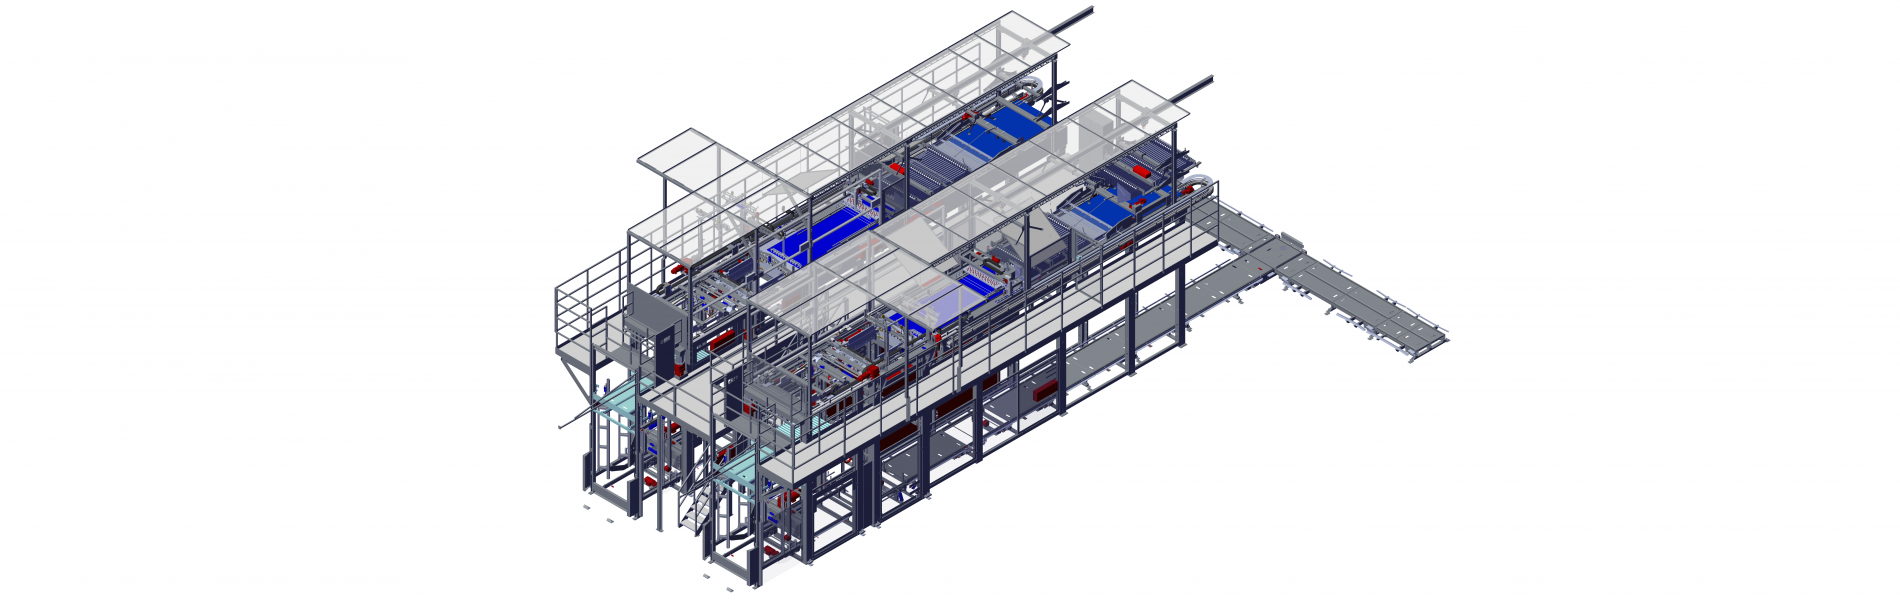 NSM Magnettechnik - Packaging Automation